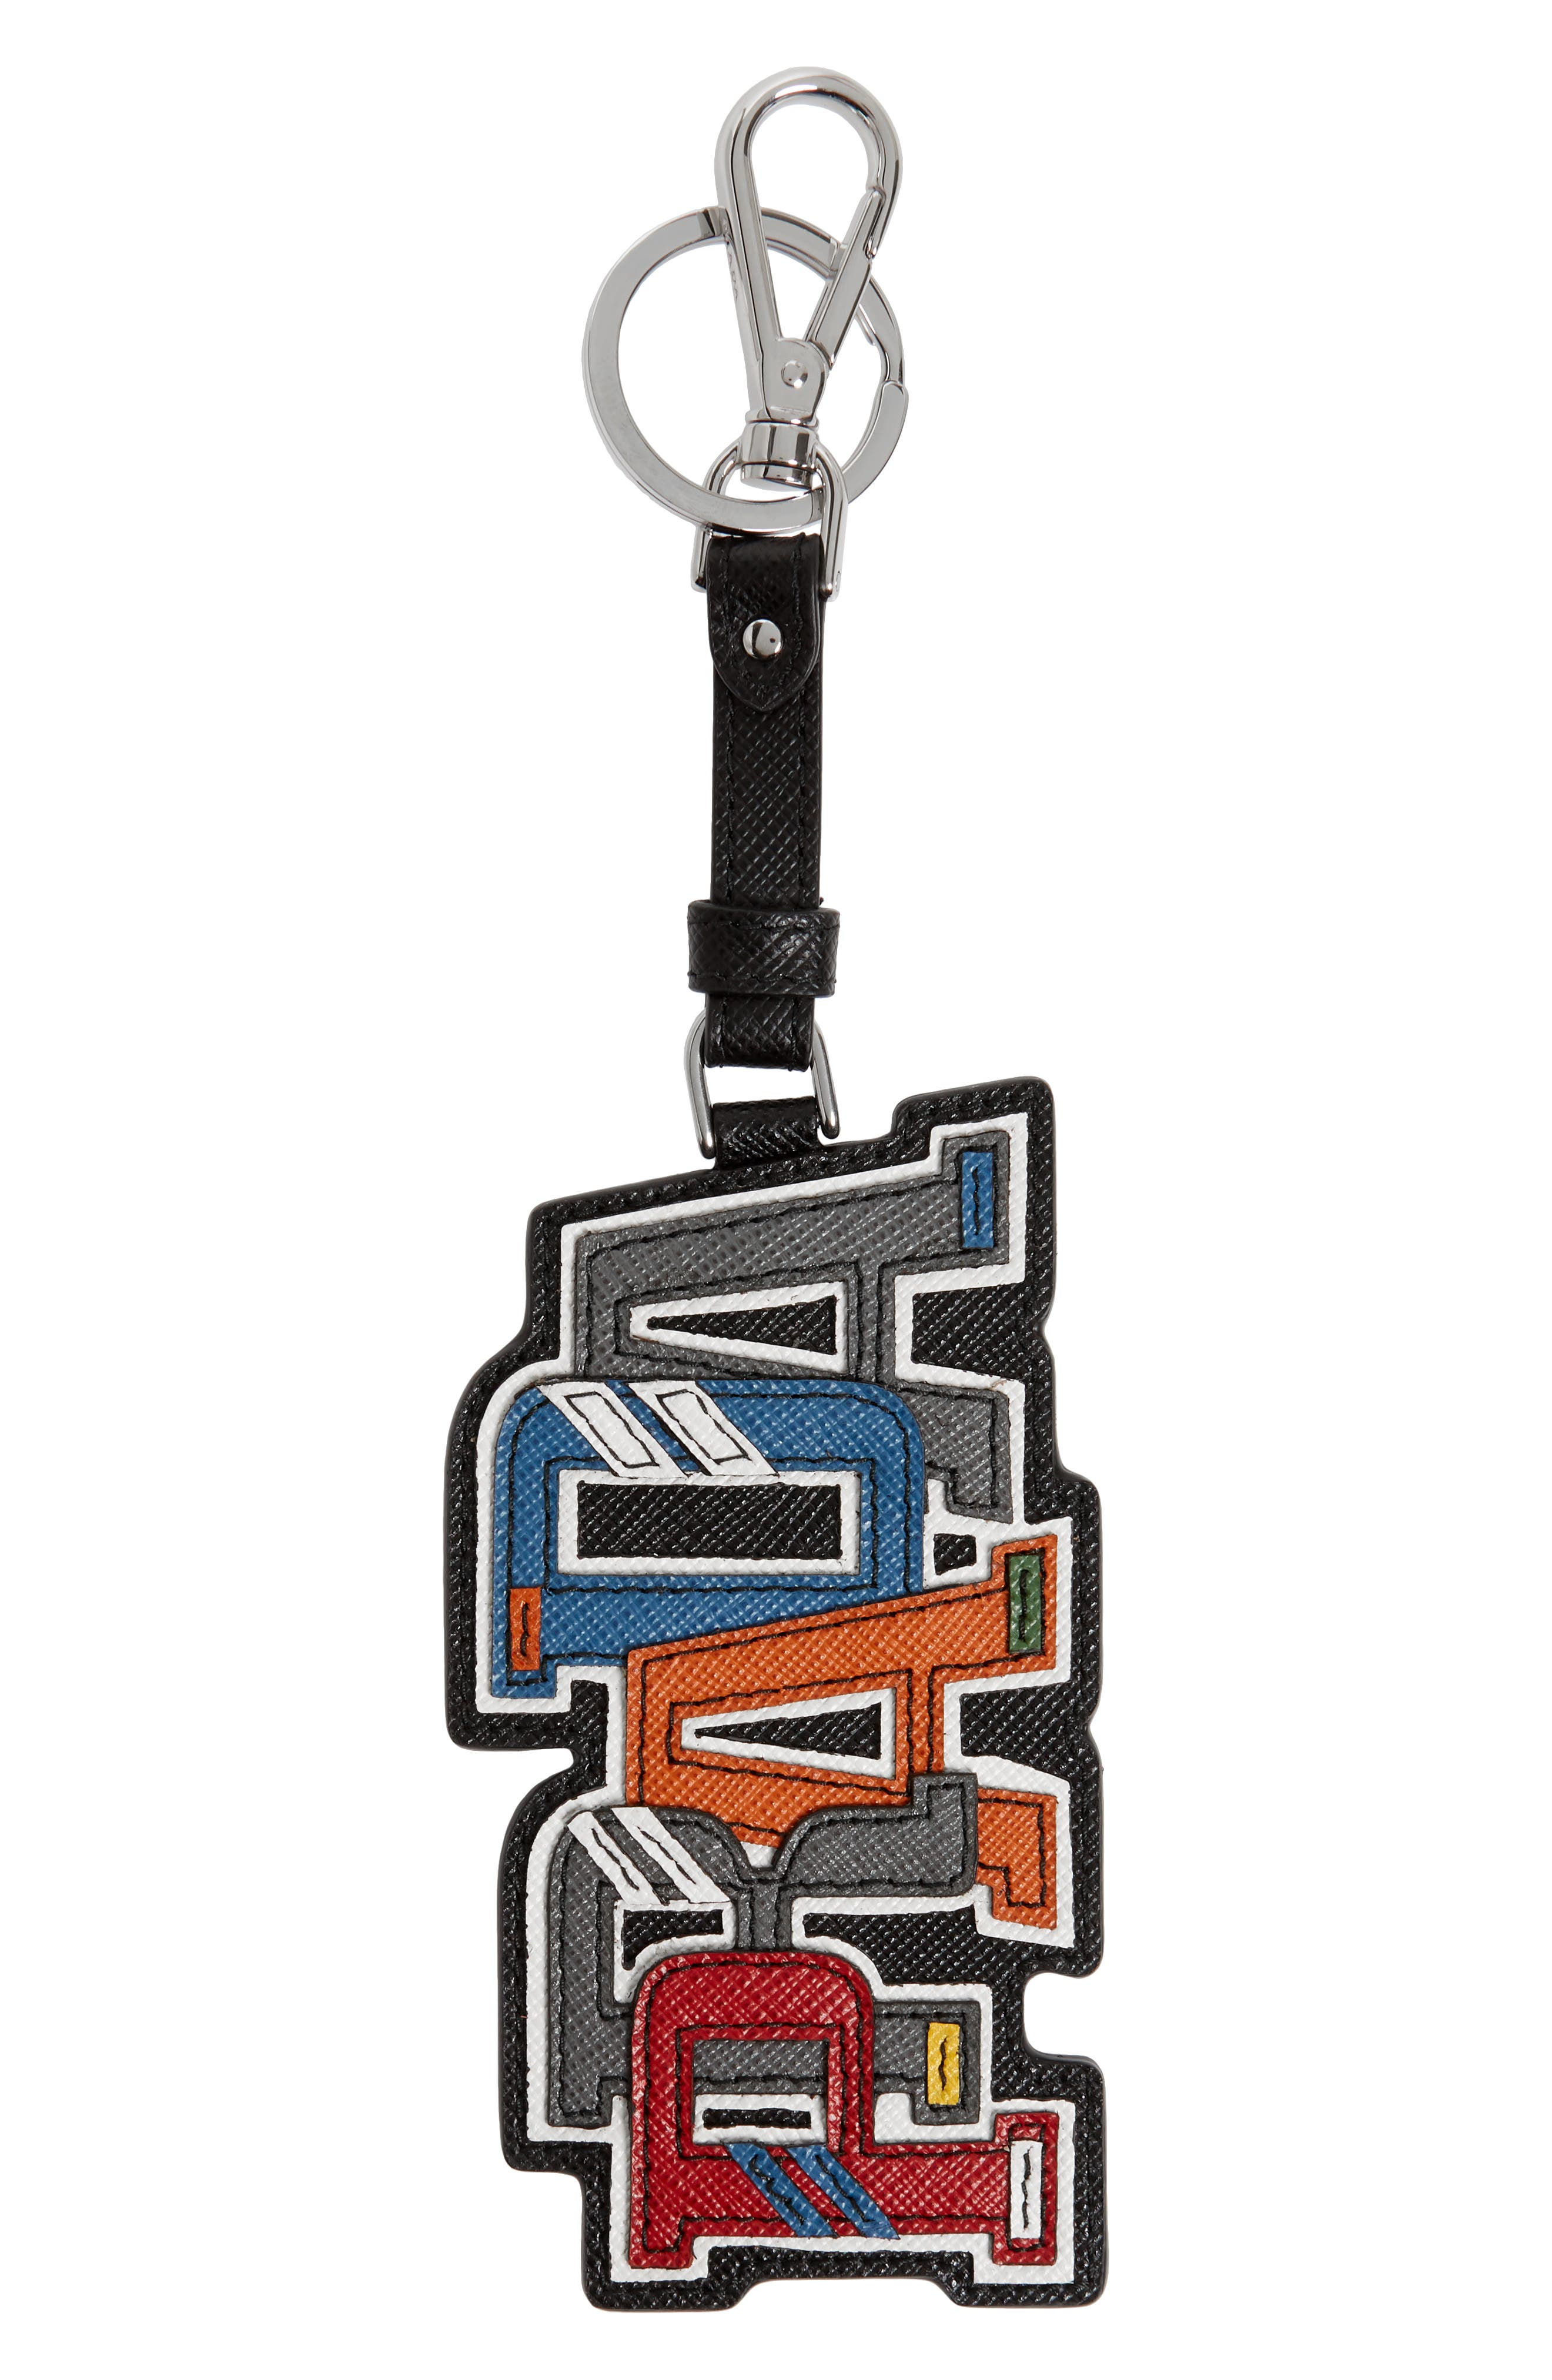 Saffiano Leather Character Key Chain,                         Main,                         color, F0sgi Nero M